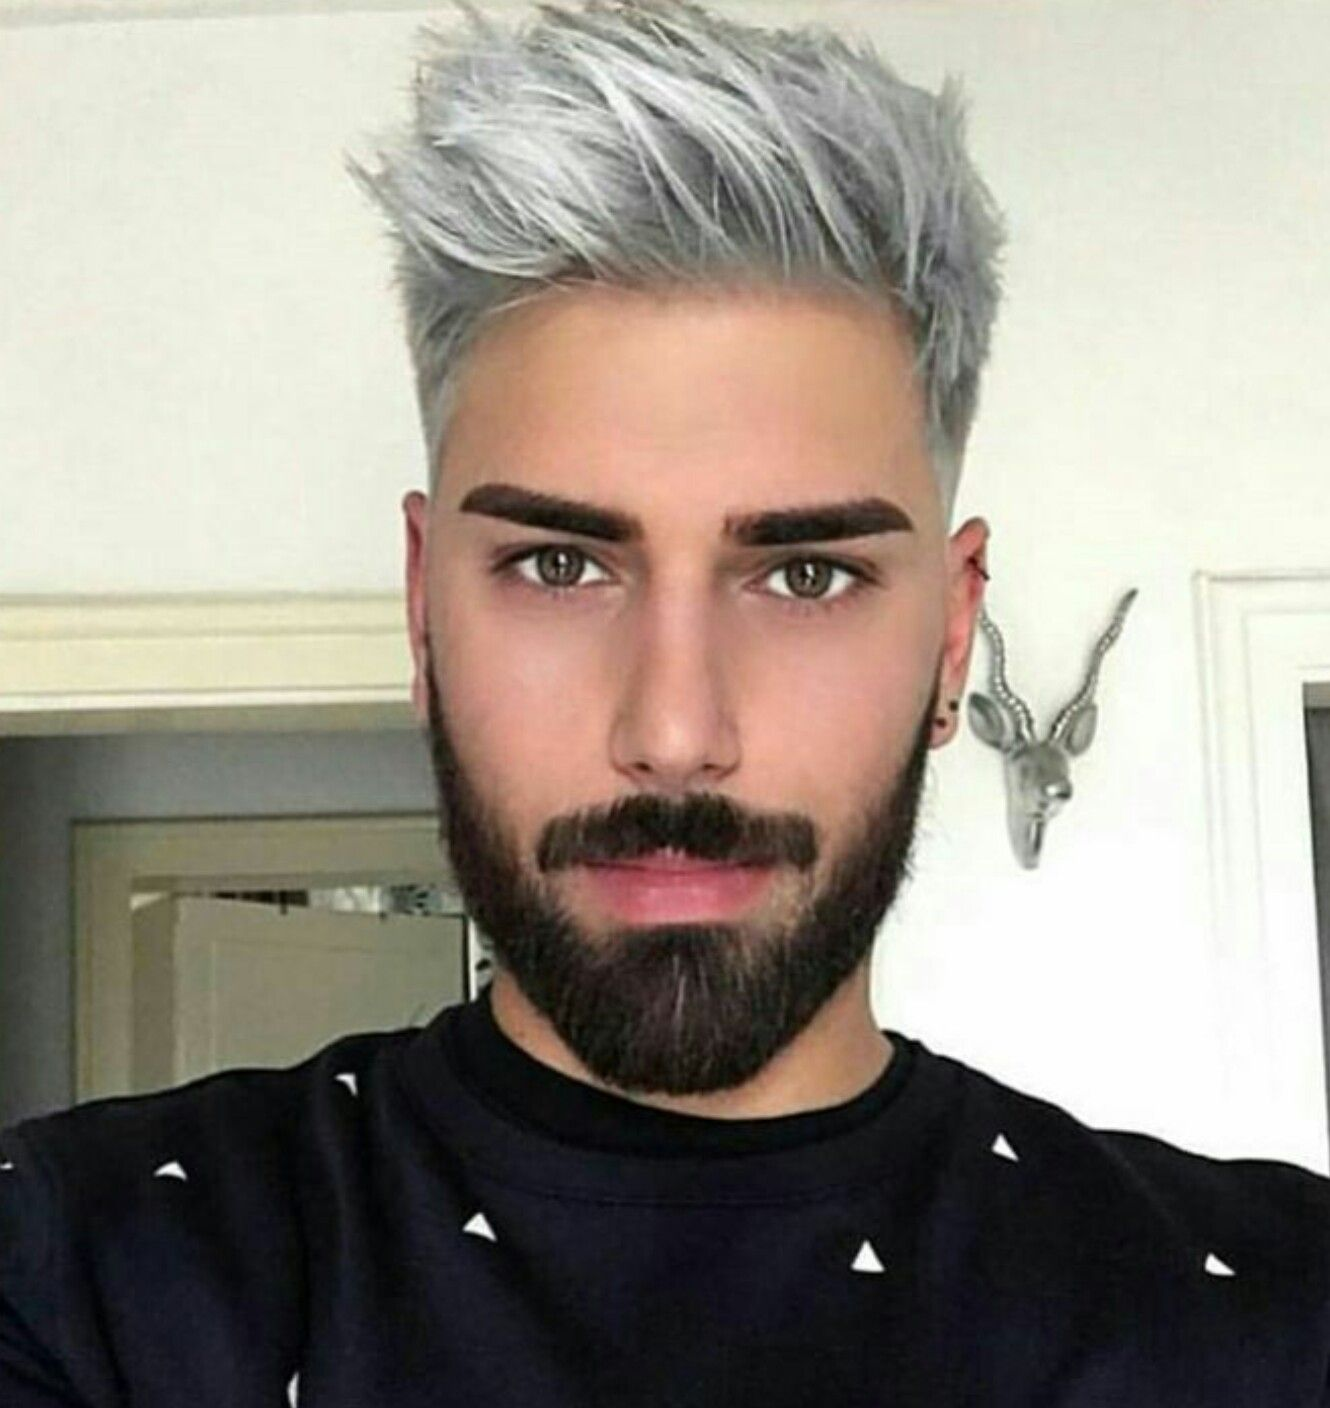 Ombre Hair Color Trends - Is The Silver #GrannyHair Style ...